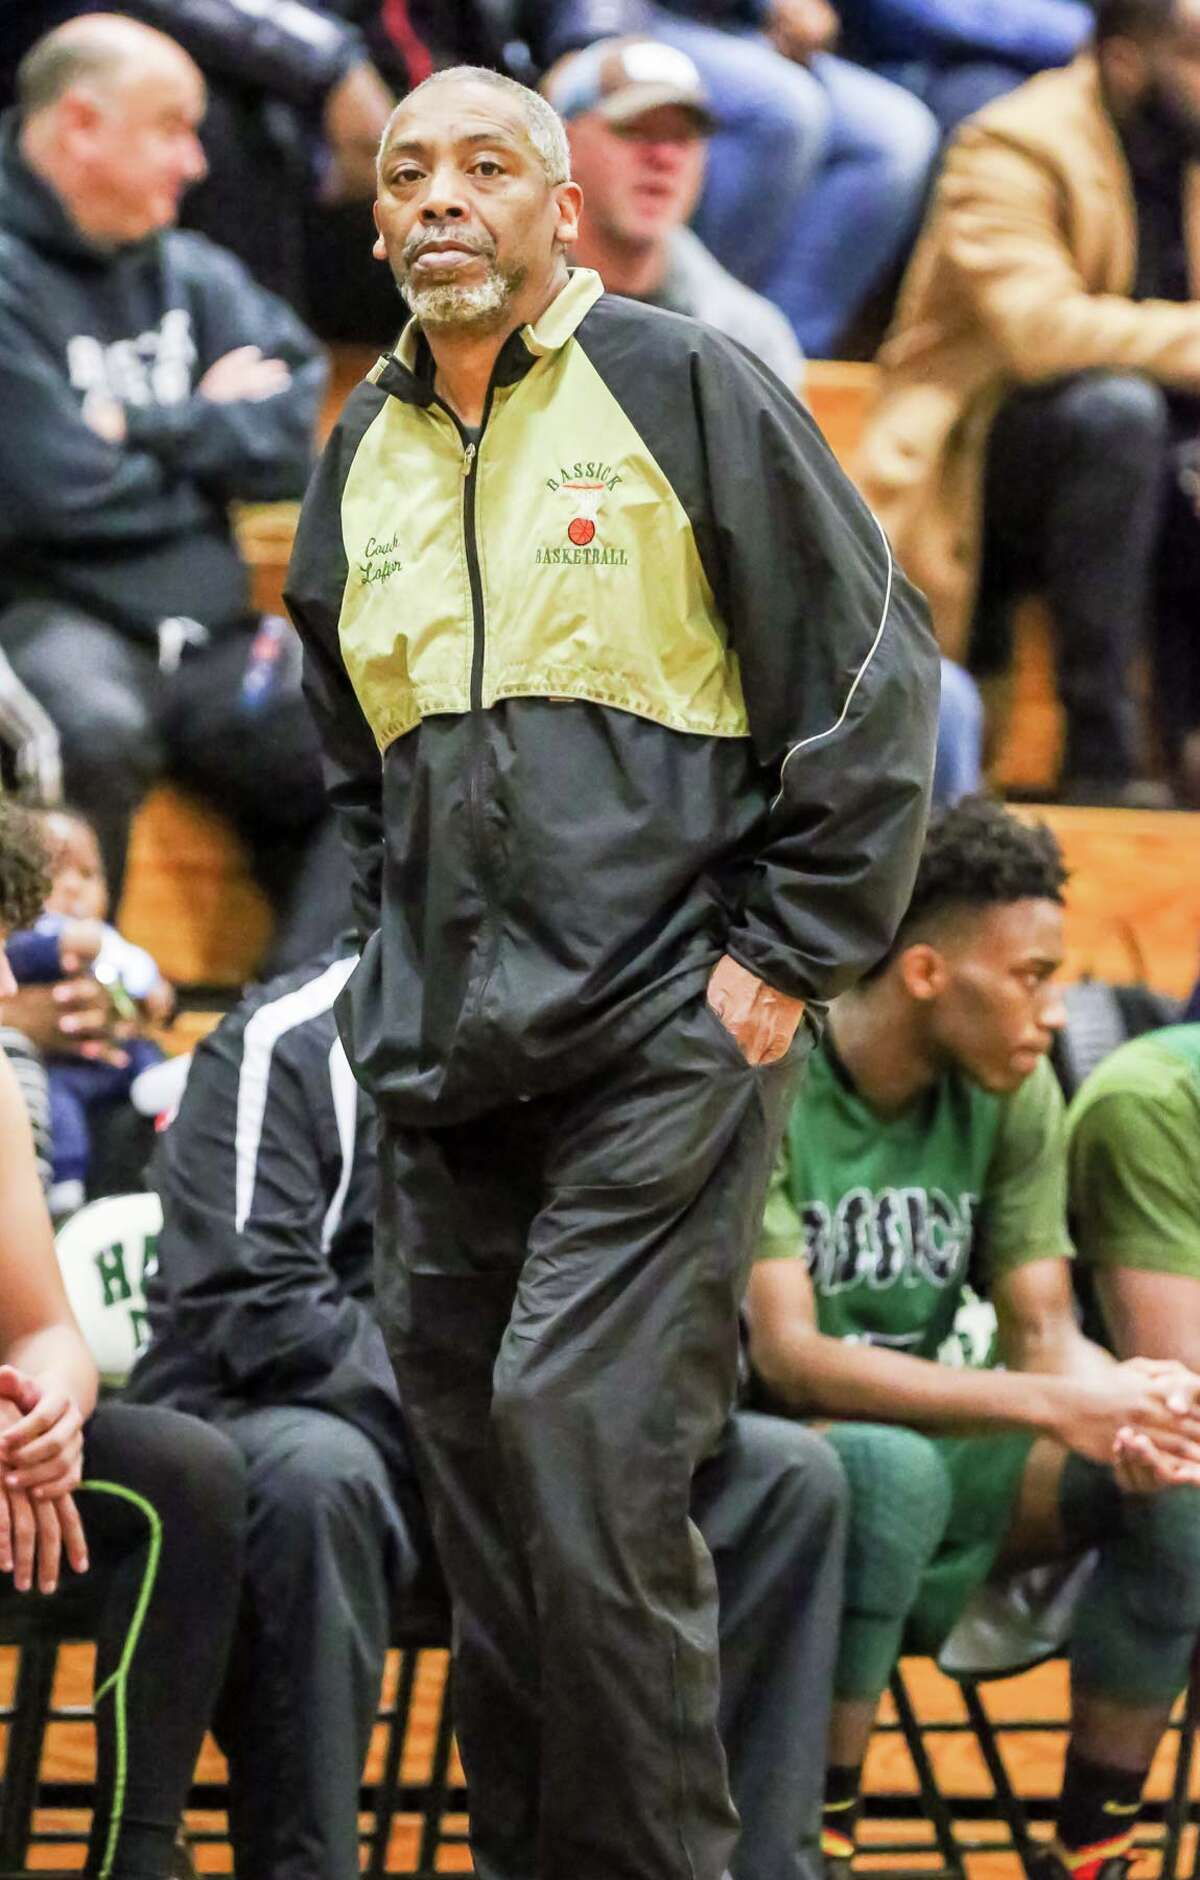 (John Vanacore/For Hearst Connecticut Media) The Hamden Green Dragons played host to the number 4 ranked Bassick Lions Tueday February 13, 2018. The Green Dragons entered the game as the sixth ranked team in the state.